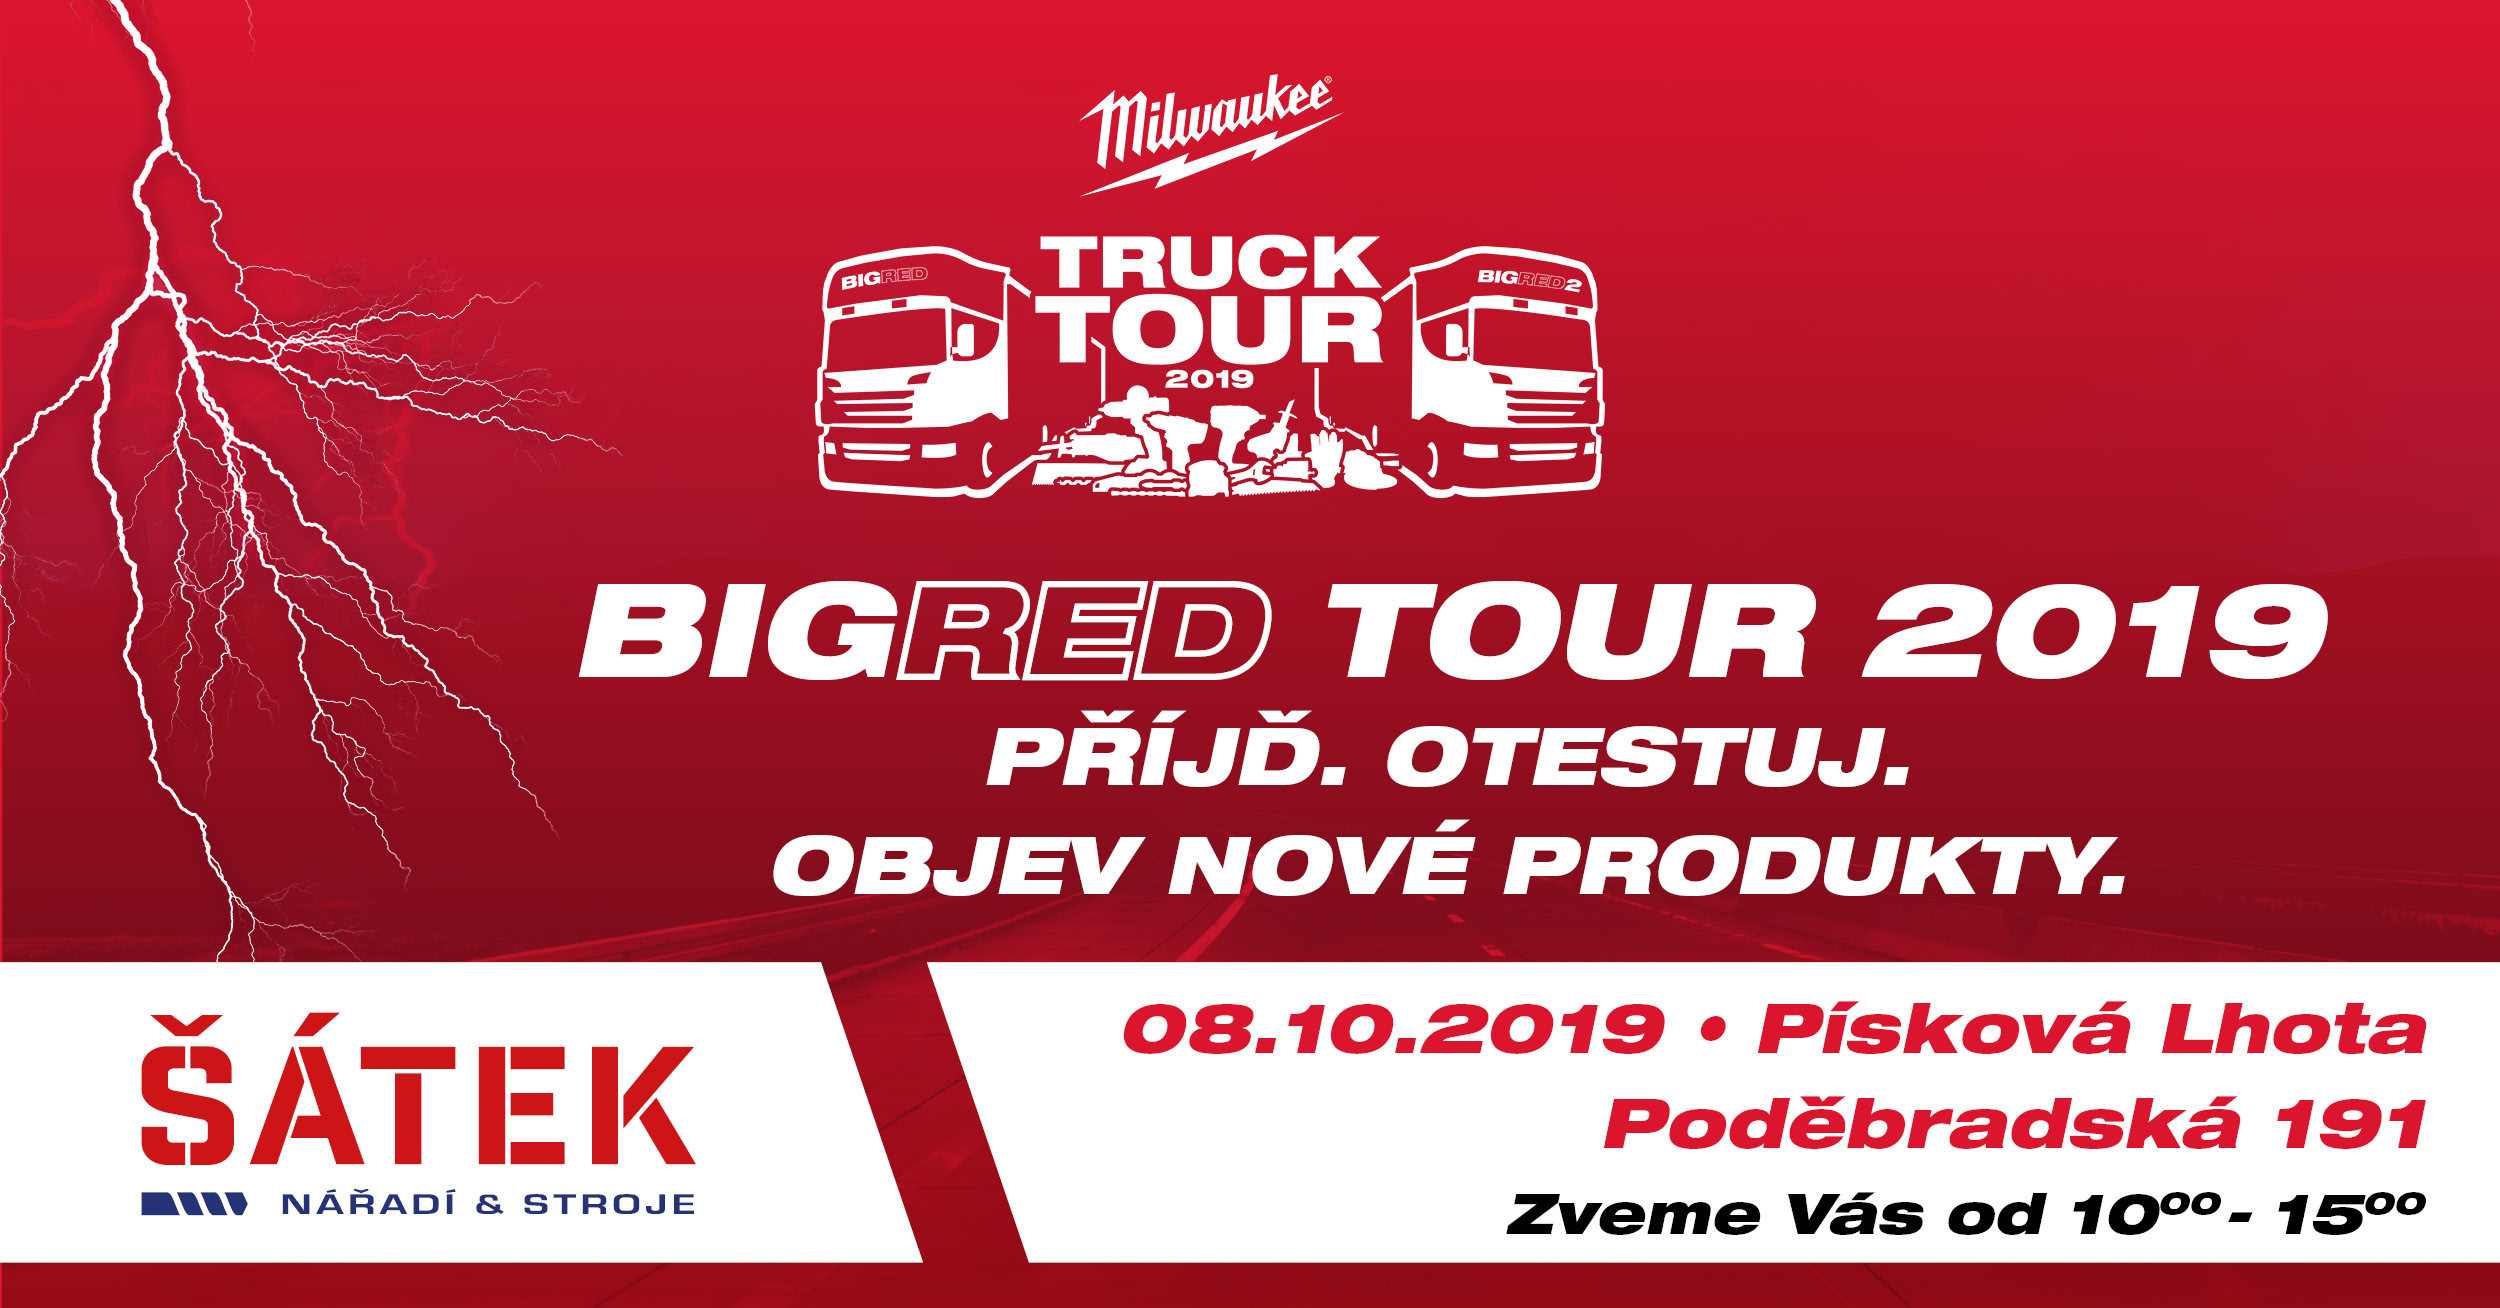 Milwaukee big red tour 2019